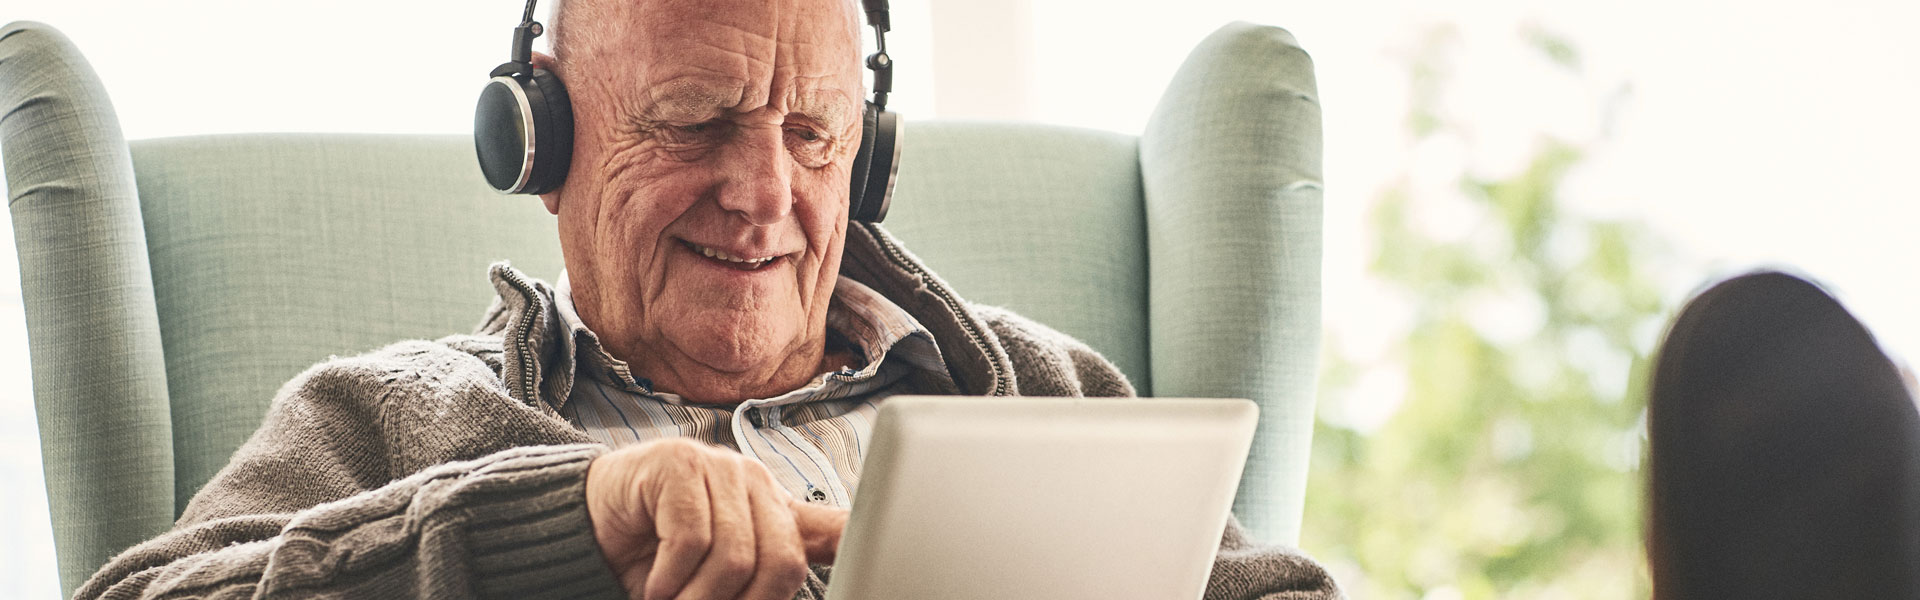 Senior man with headphones using digital tablet